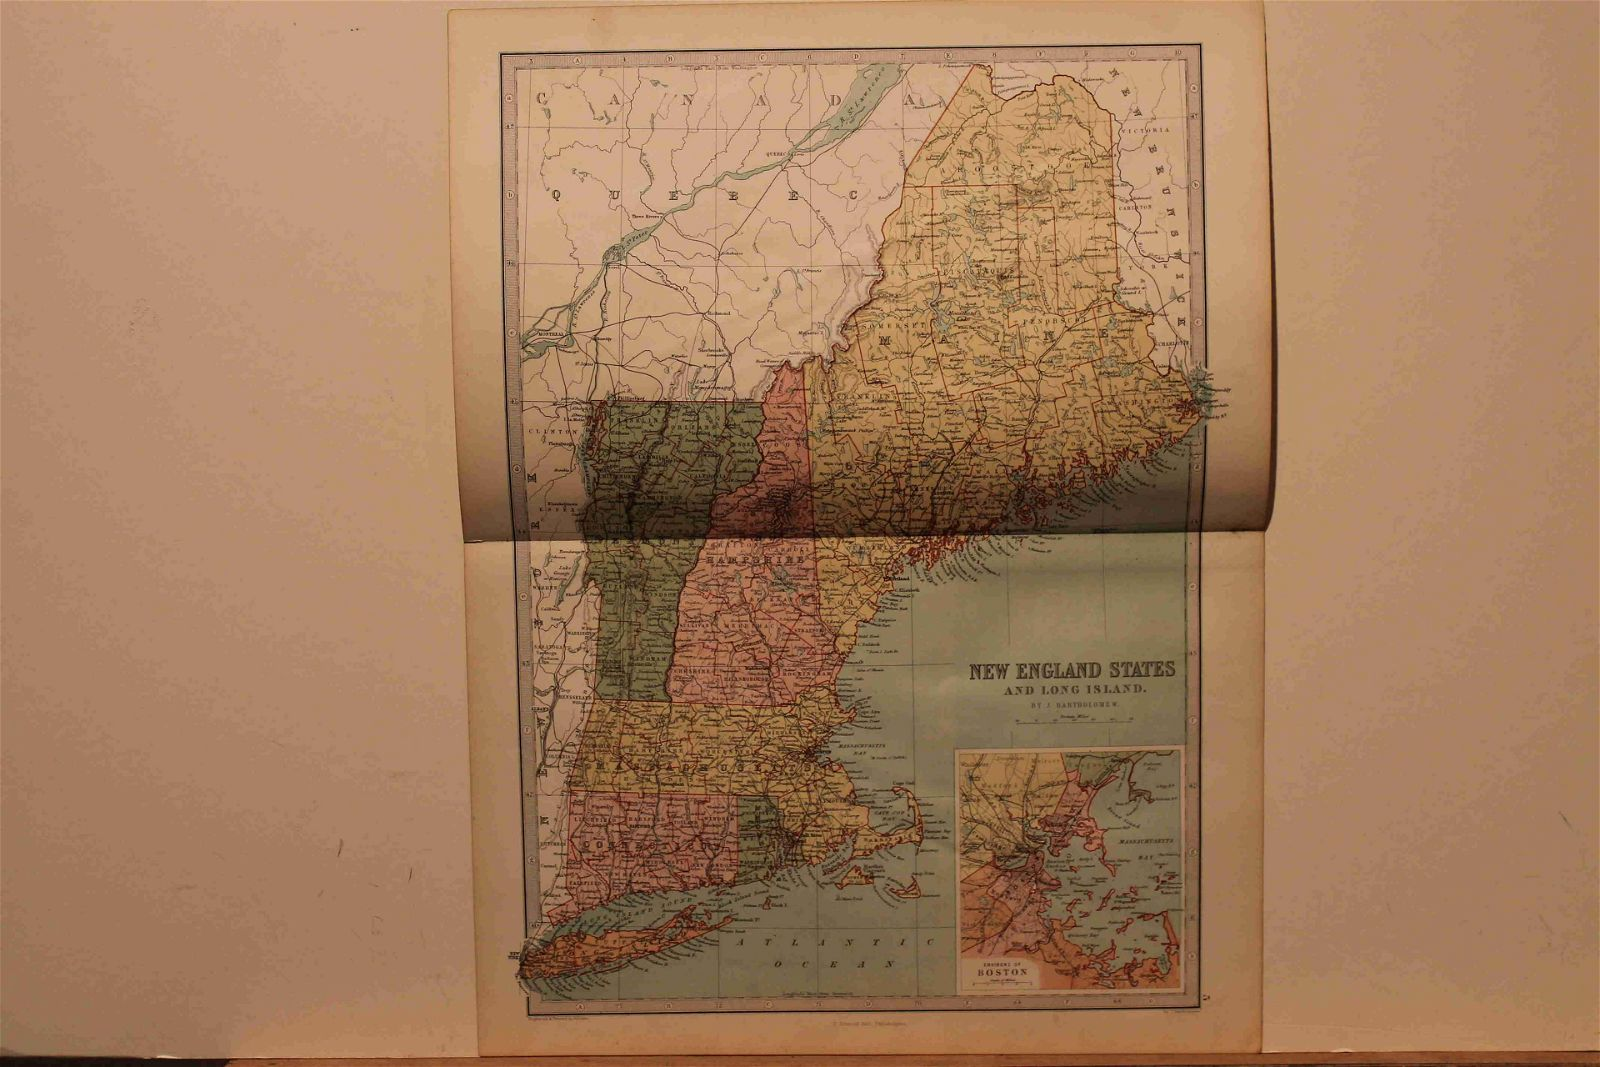 1873 Map of New England and Long Island